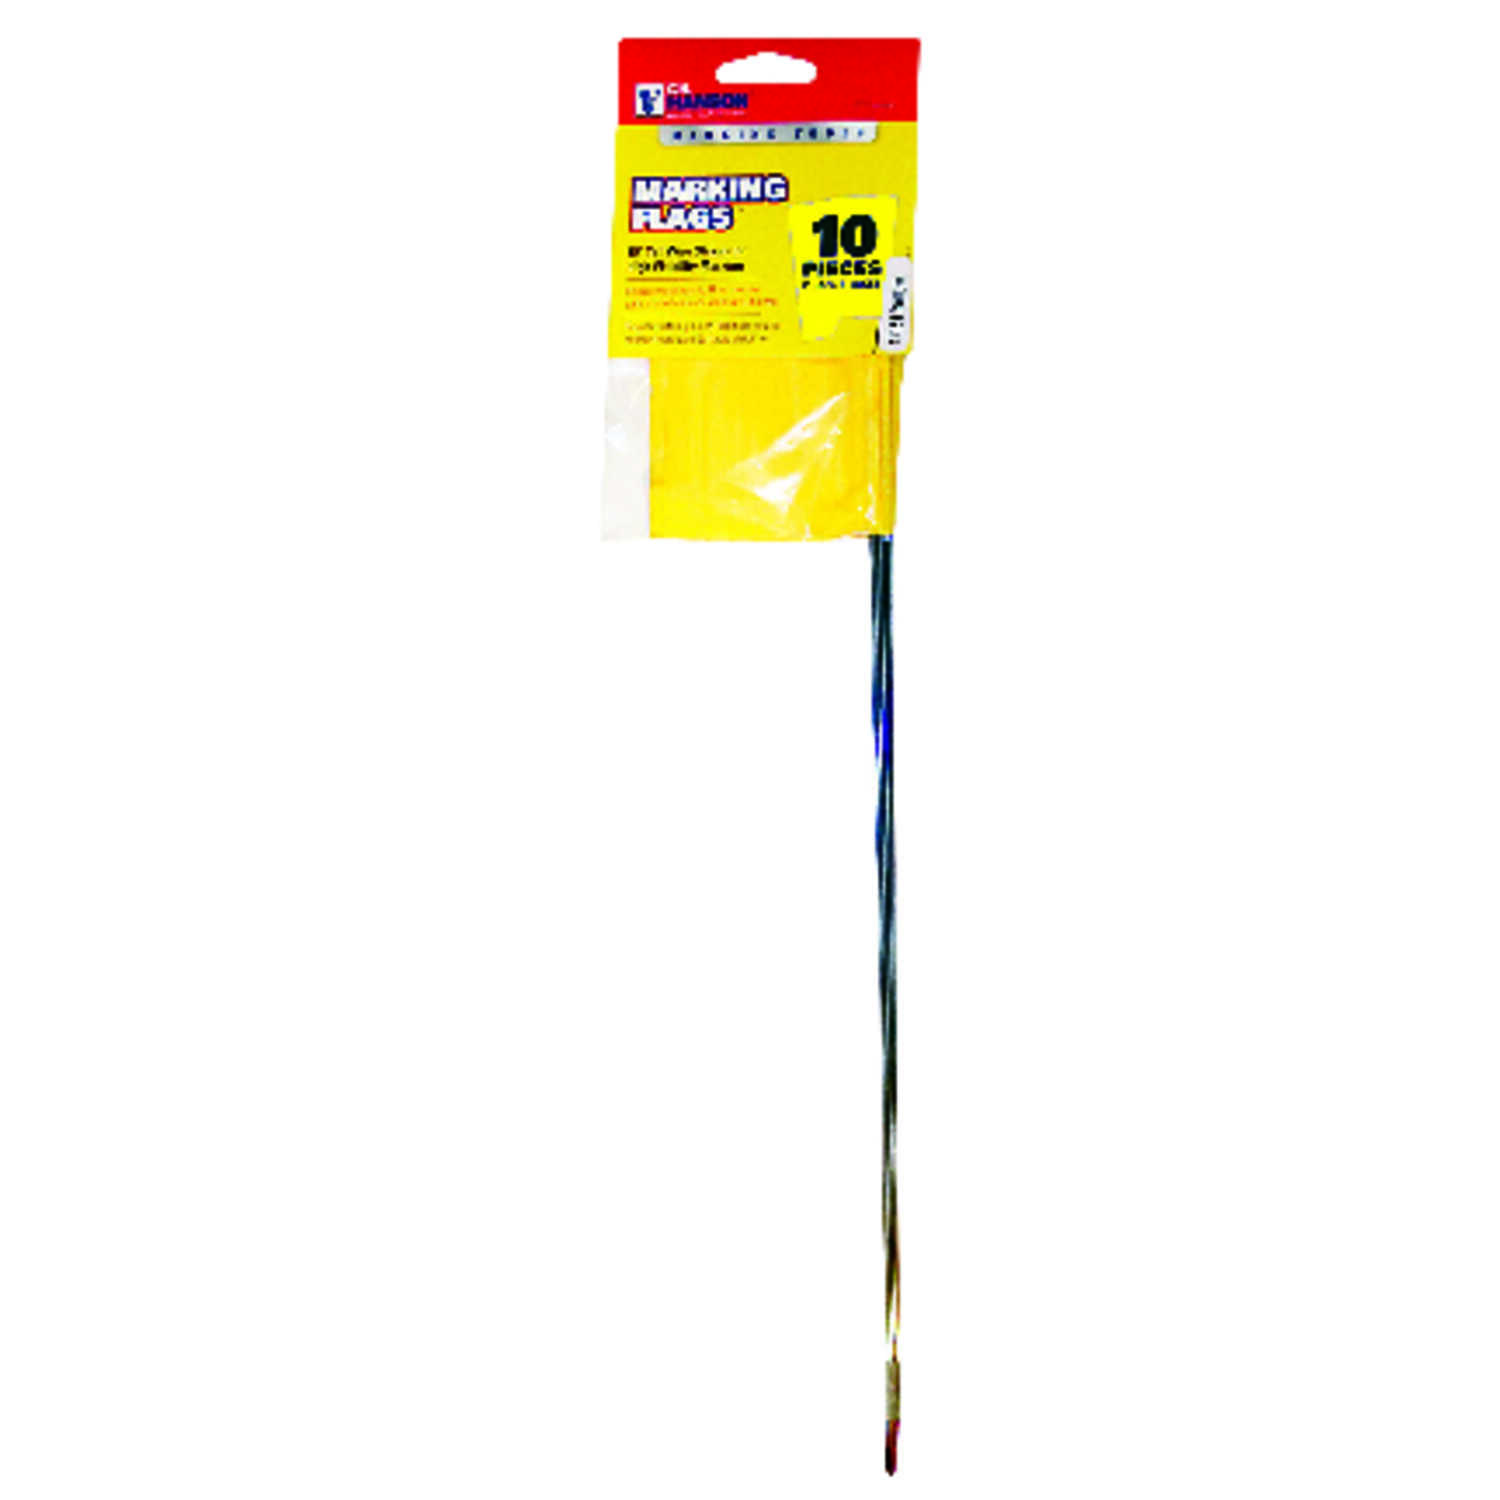 C.H. Hanson  Yellow  Marking Flags  Polyvinyl  15 in. 10 each